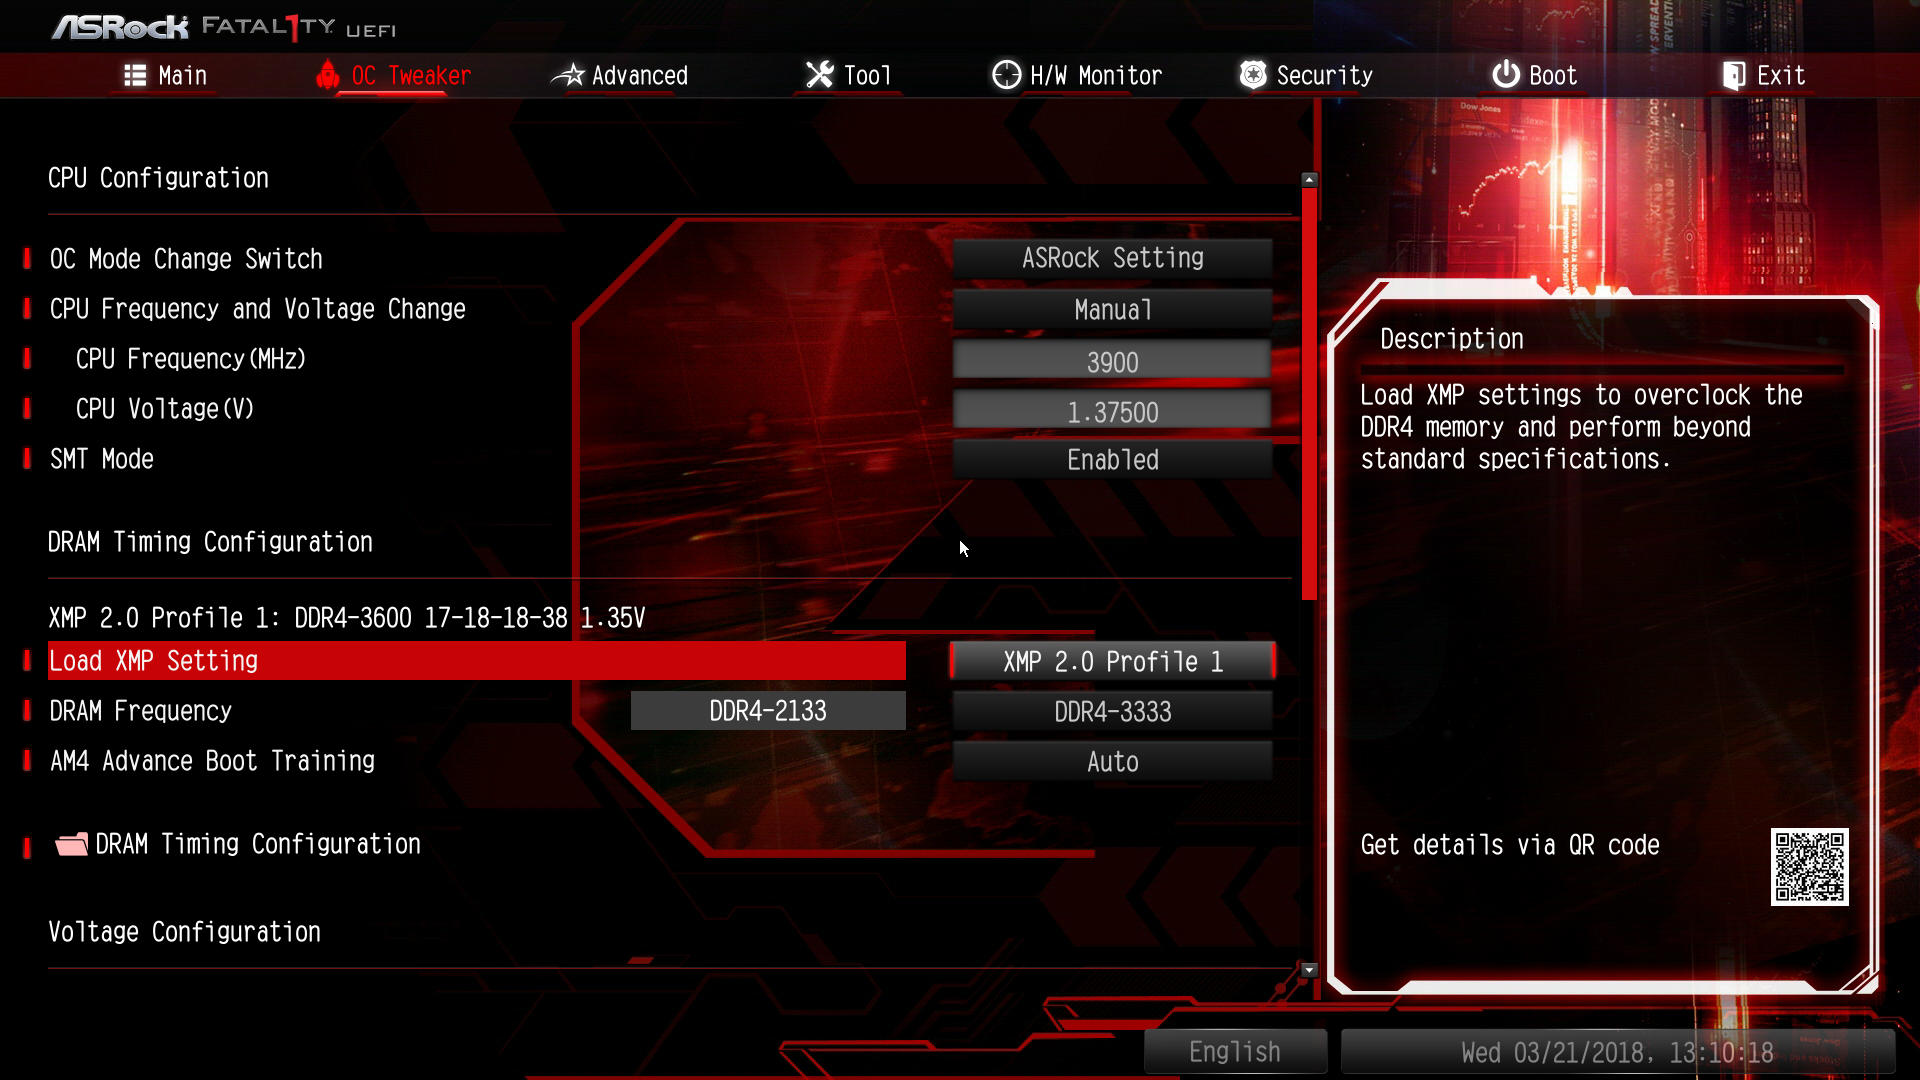 How to Overclock With ASRock UEFI BIOS - Overclocking The